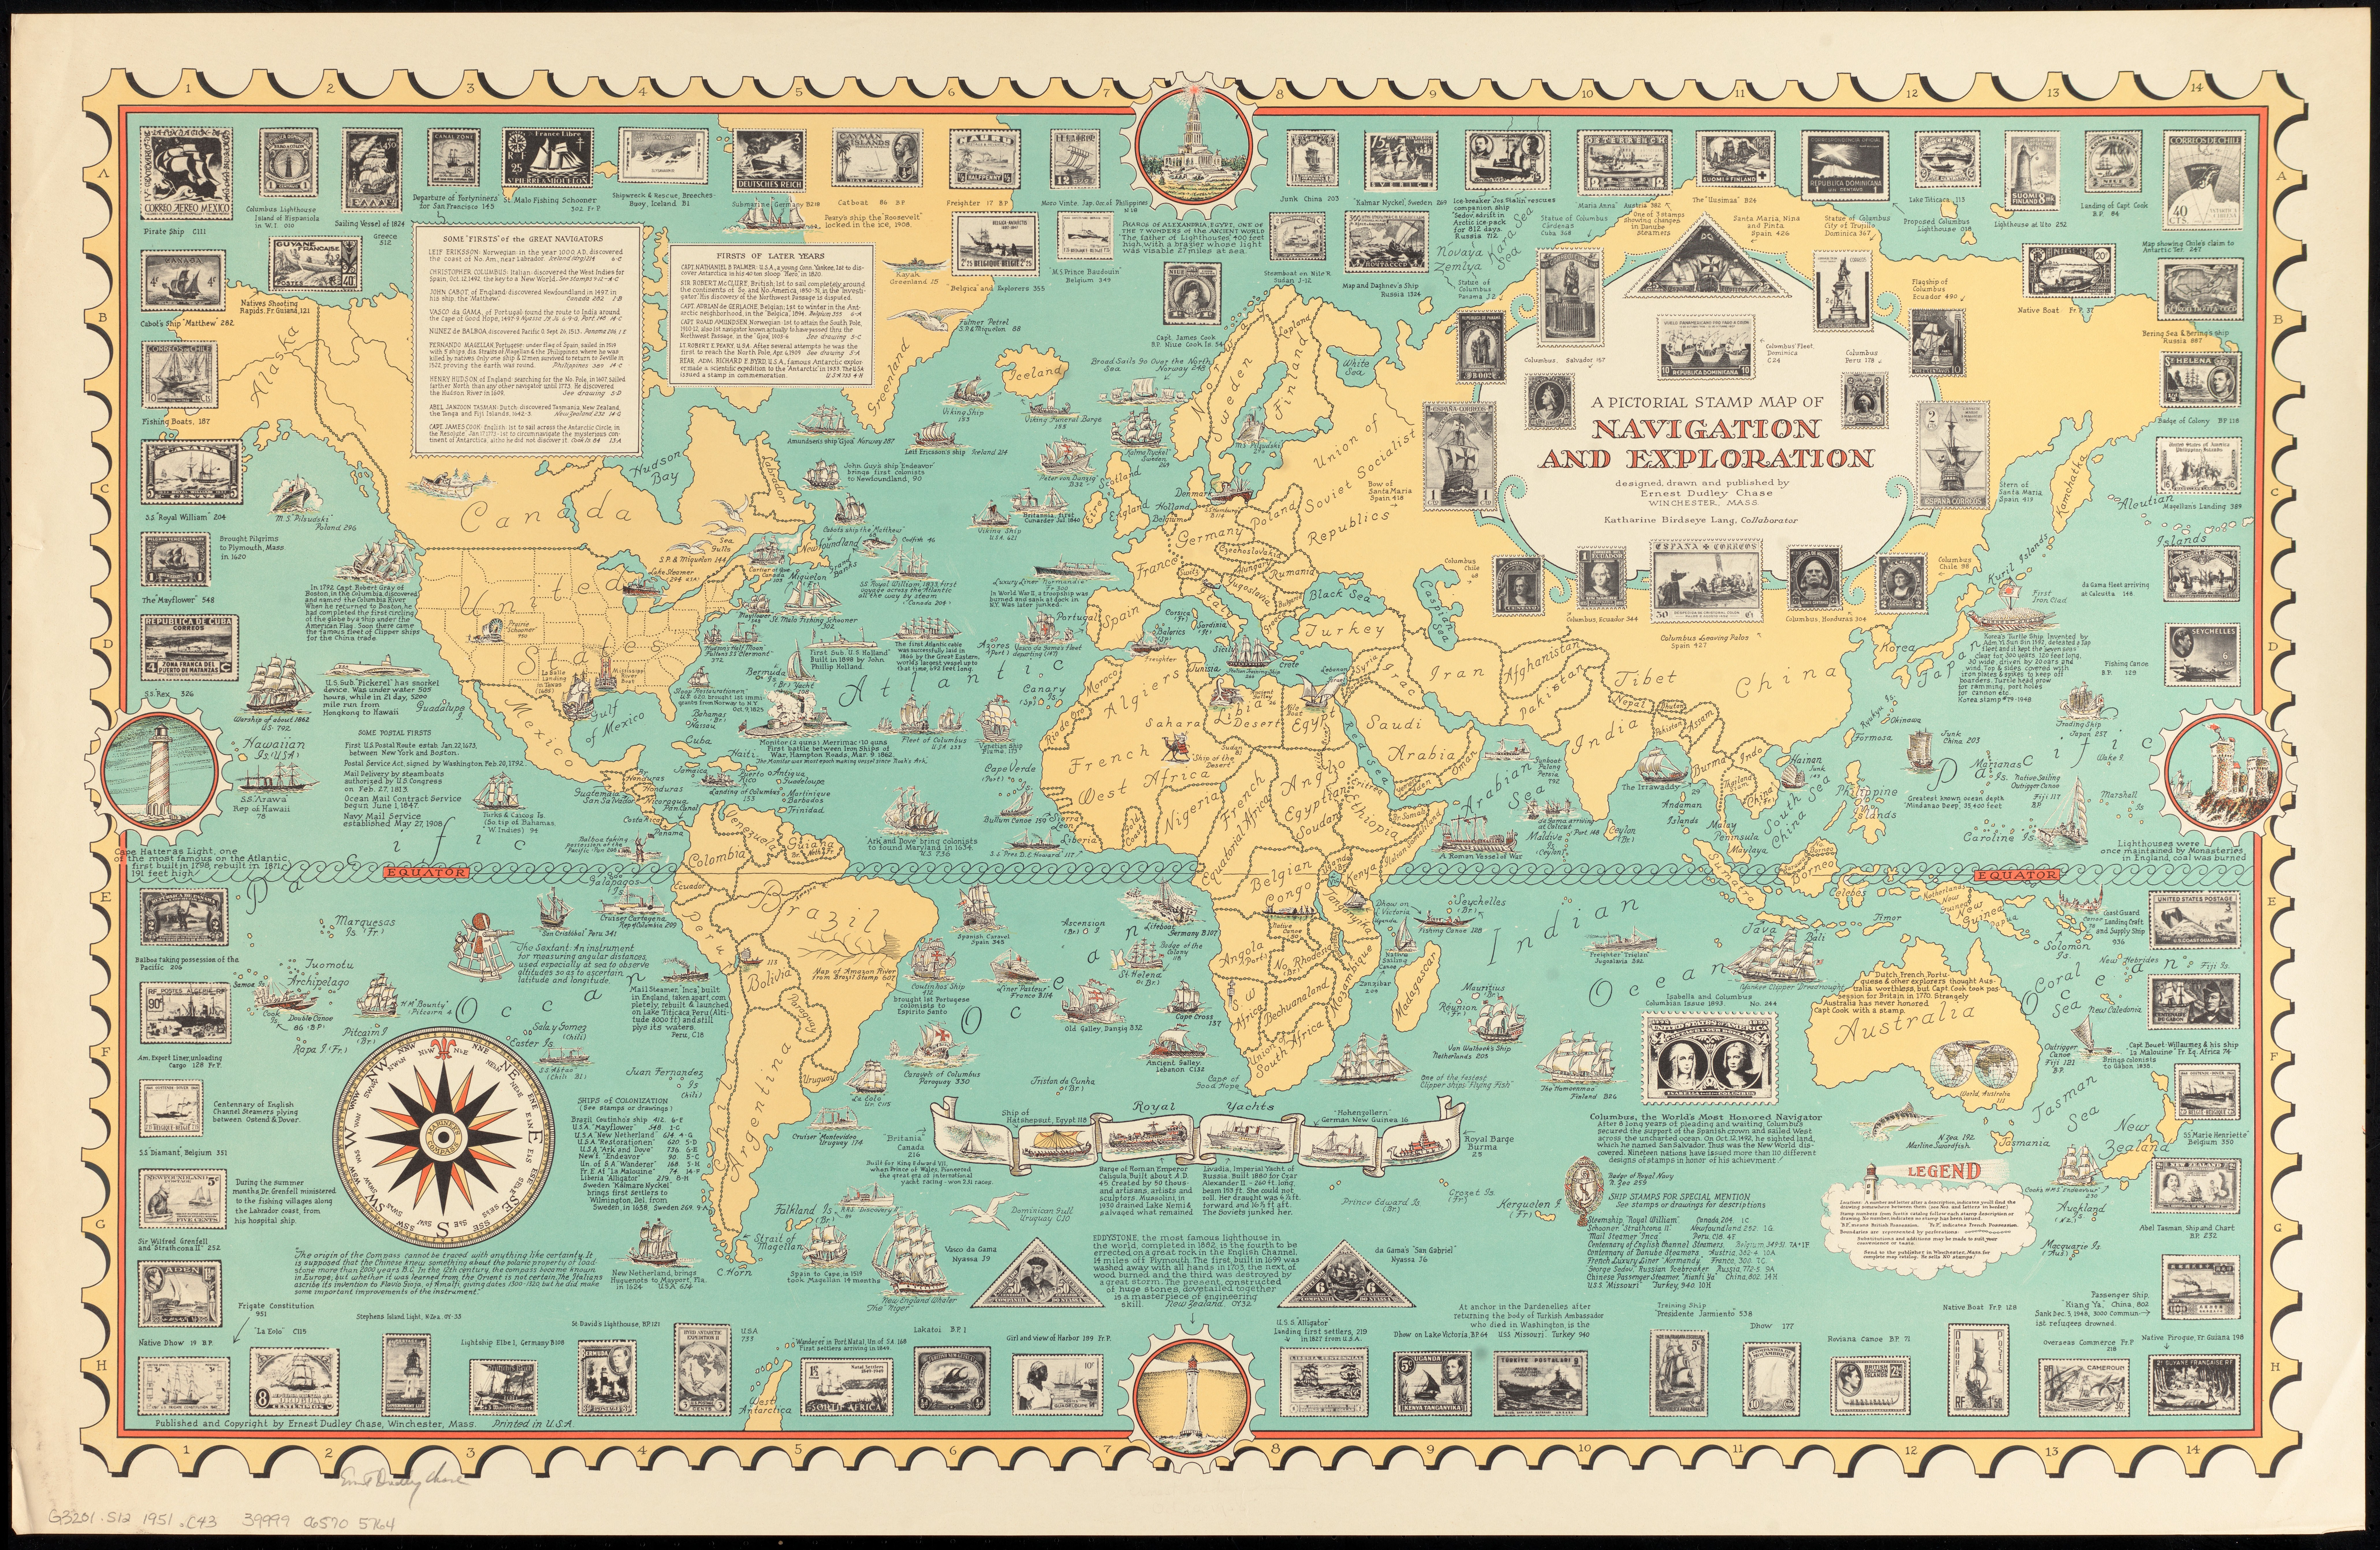 Navigation World Map.File A Pictorial Stamp Map Of Navigation And Exploration